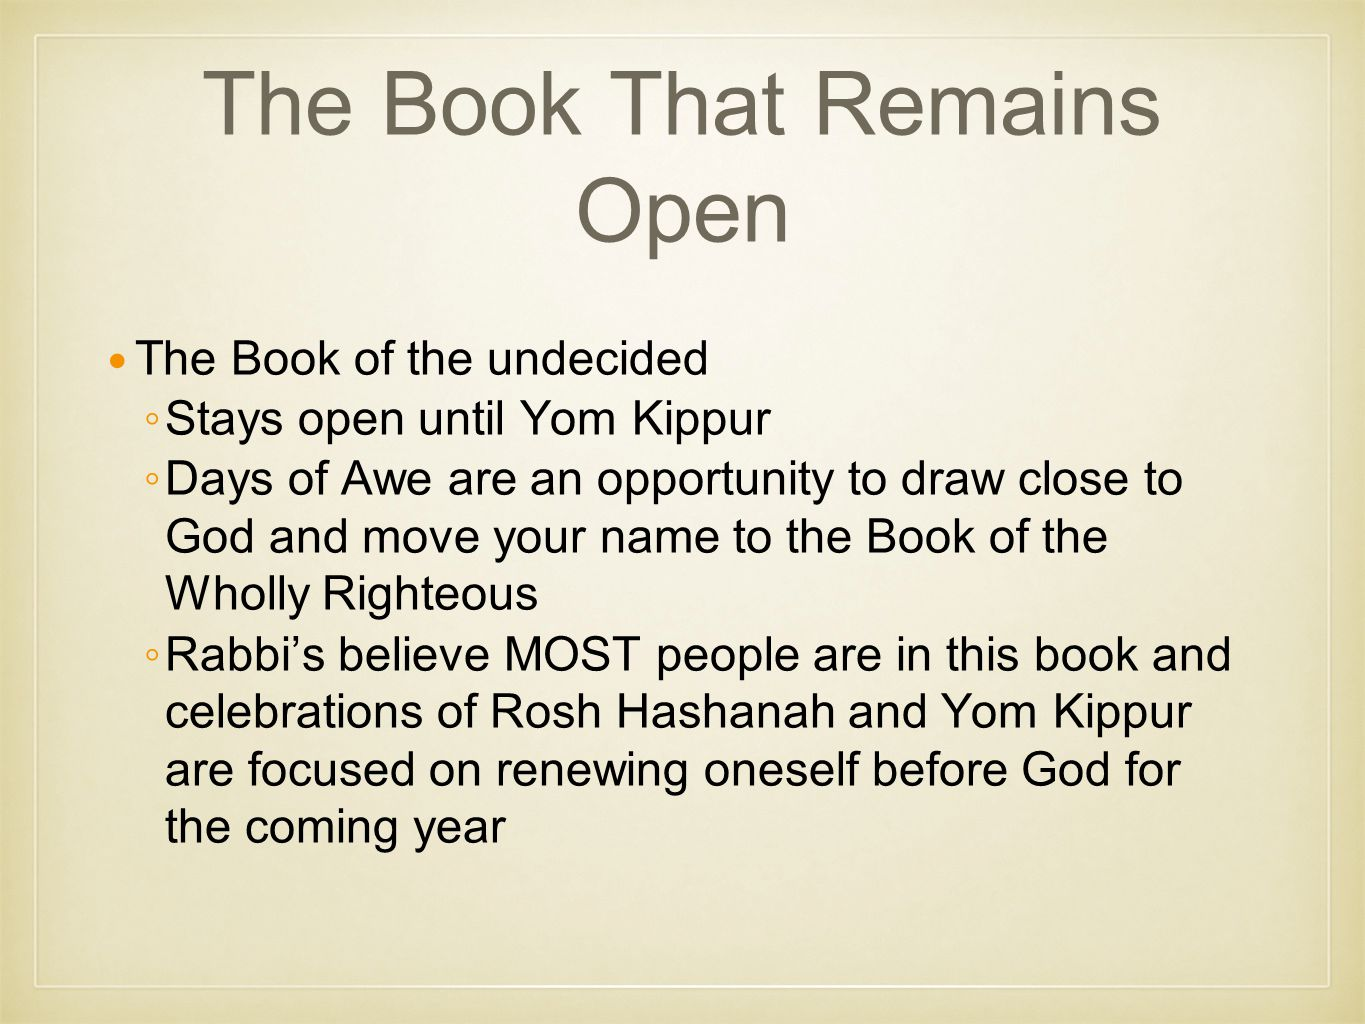 The Book That Remains Open The Book of the undecided ◦Stays open until Yom Kippur ◦Days of Awe are an opportunity to draw close to God and move your name to the Book of the Wholly Righteous ◦Rabbi's believe MOST people are in this book and celebrations of Rosh Hashanah and Yom Kippur are focused on renewing oneself before God for the coming year